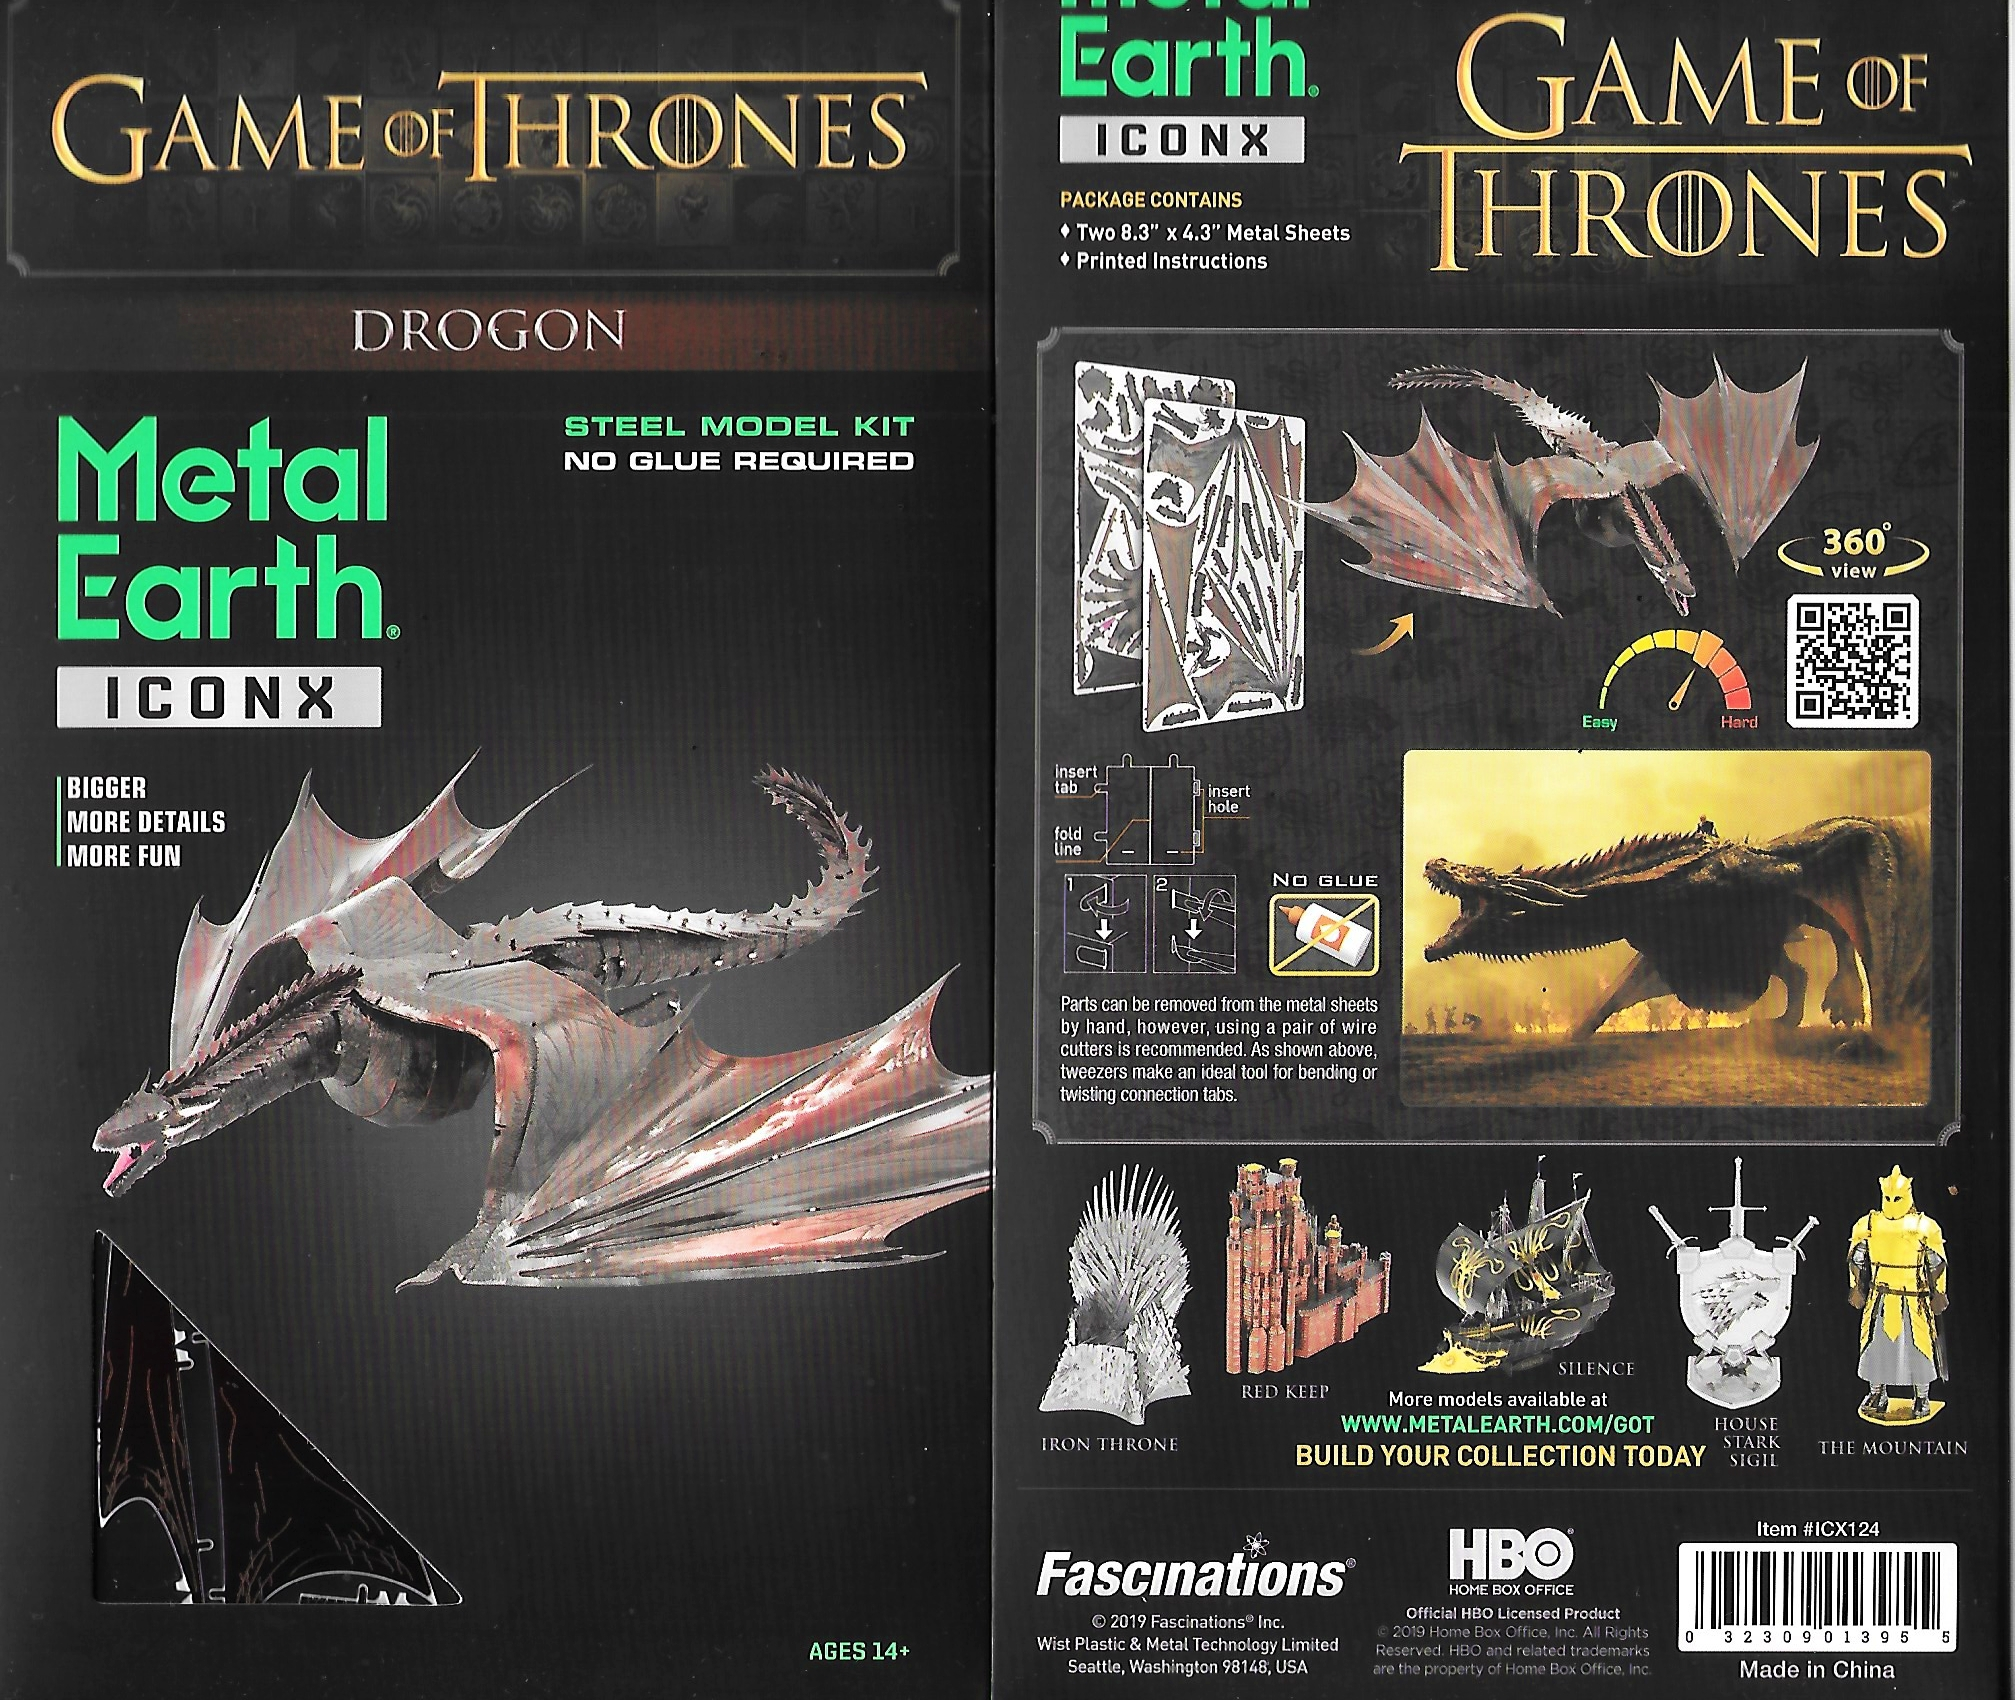 Game of Thrones Drogon Dragon Metal Earth ICONX 3D Steel Model Kit NEW  SEALED